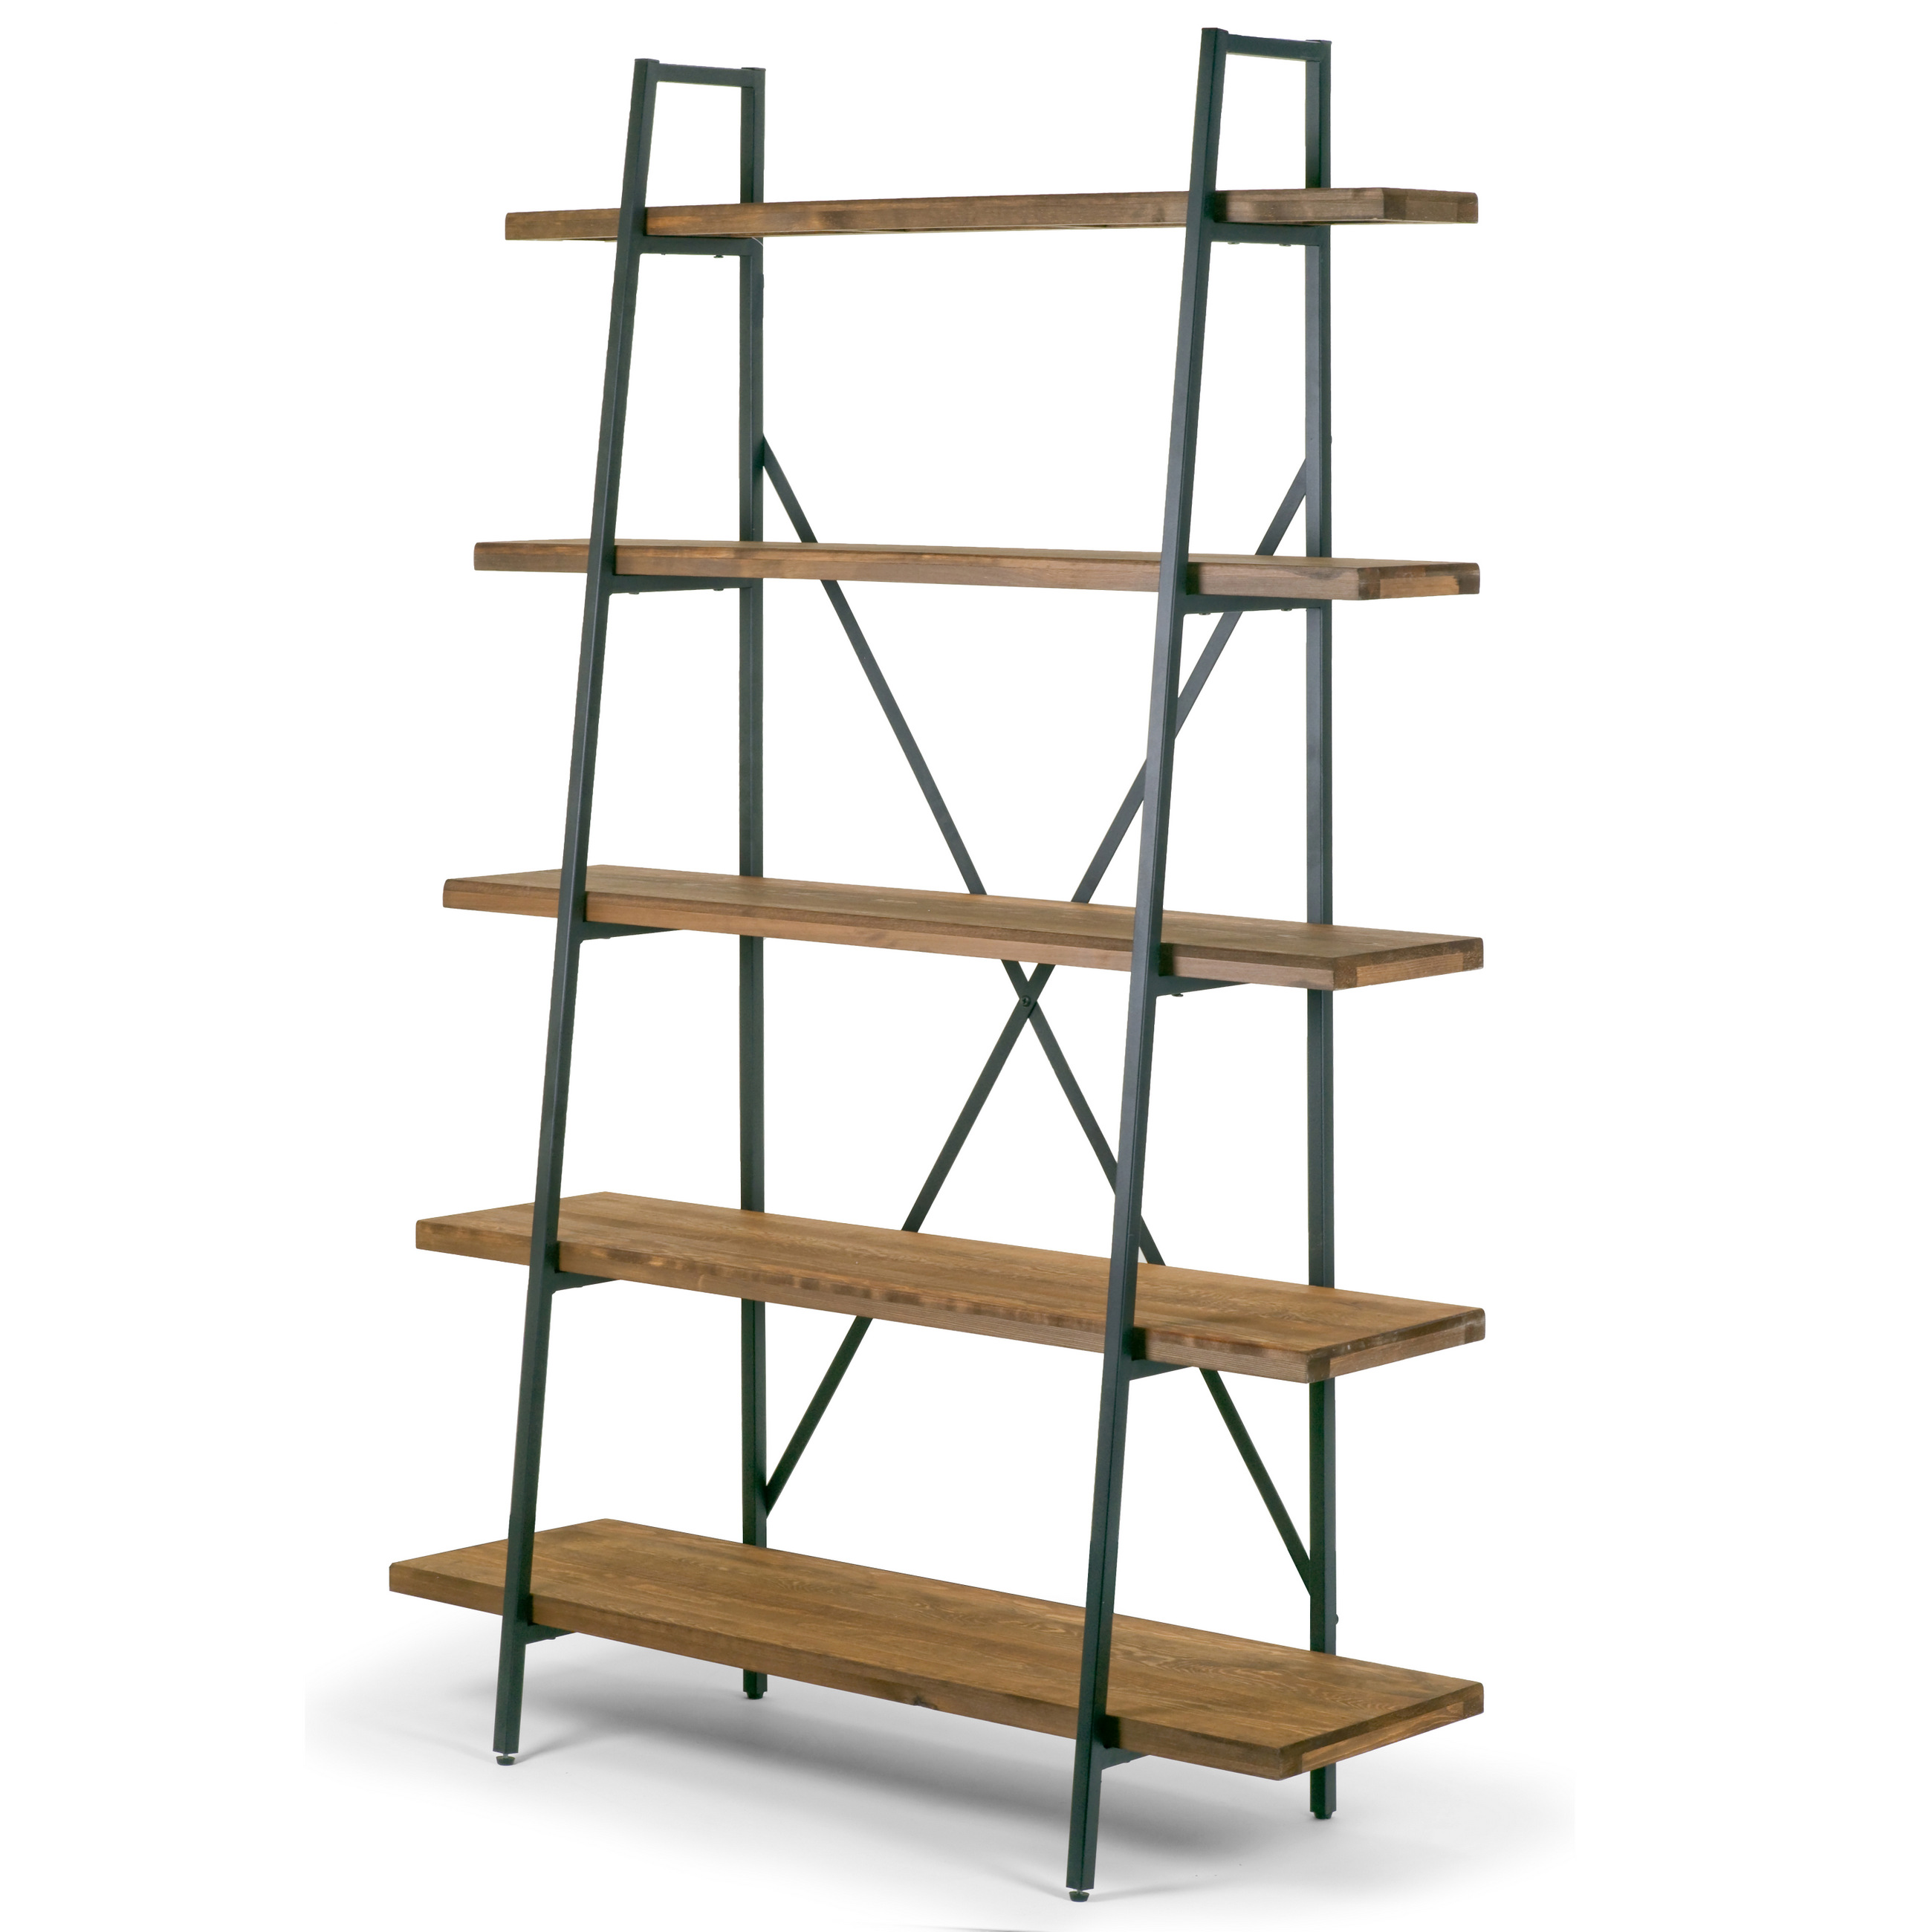 "Ailis 71.5"" Leaning Etagere Brown Pine Wood Metal Frame Bookcase Five-shelf Media Tower by Glamour Home"